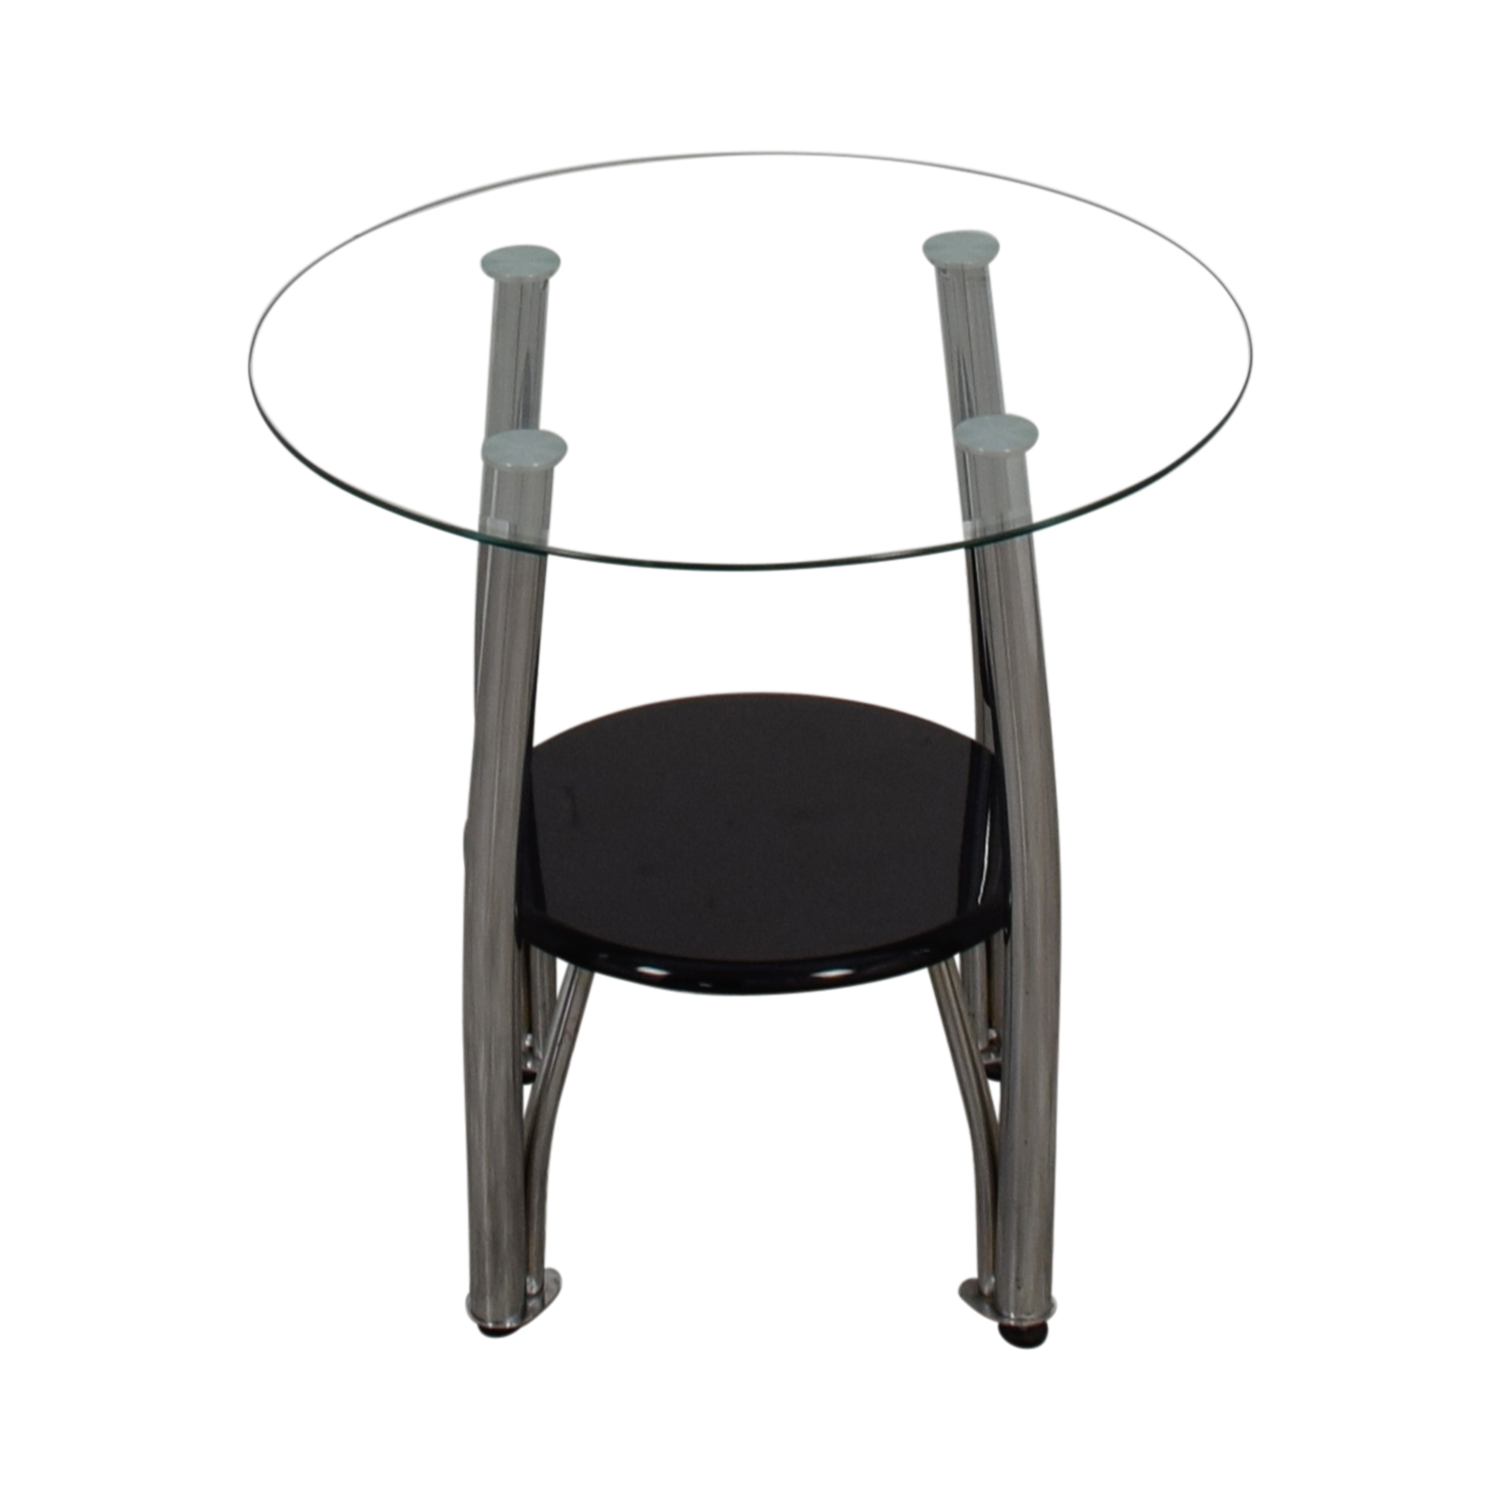 Ashley Furniture Ashley Furniture Round Glass and Black End Table black